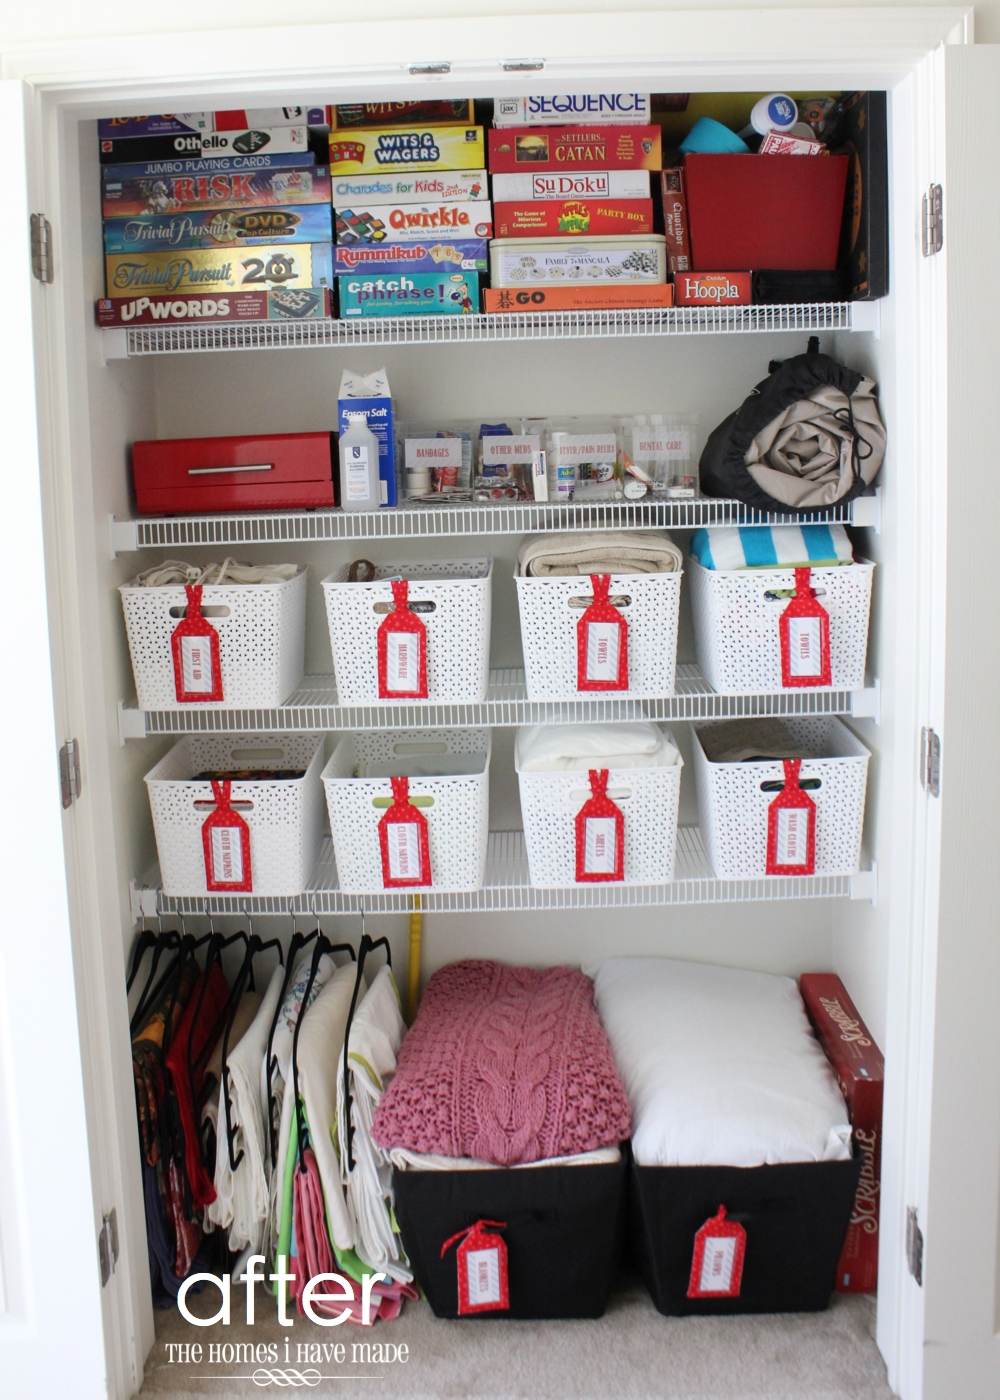 Organizing Linen Closet Ideas Part - 18: The Homes I Have Made